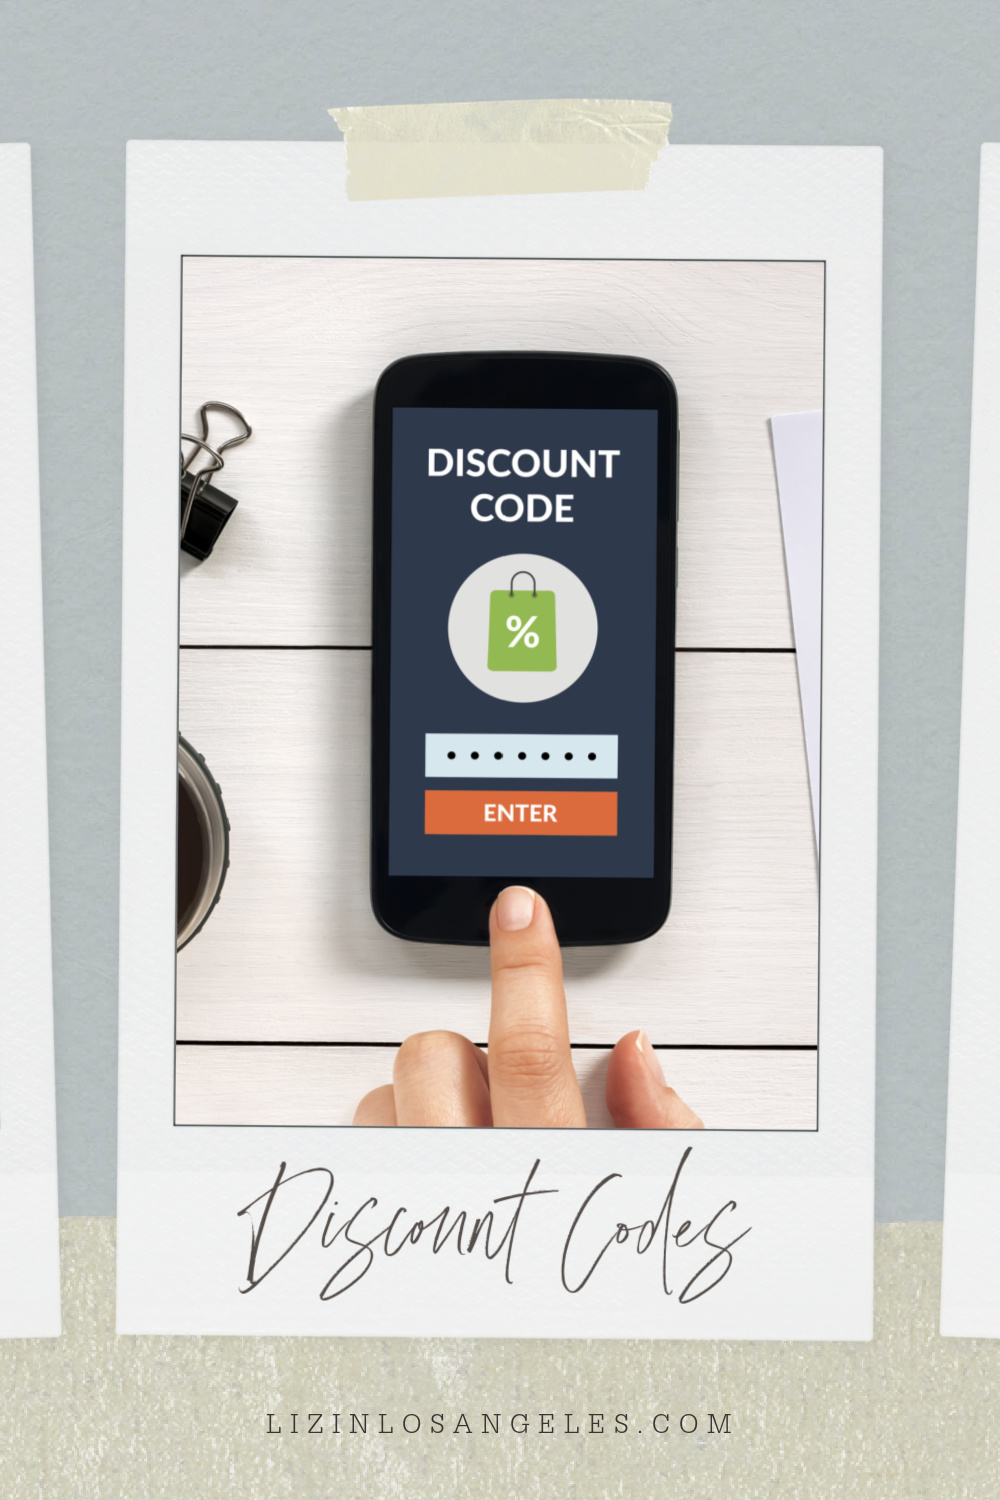 Discount Codes by Liz in Los Angeles, Los Angeles Lifestyle Blogger, an image of a person pressing a discount code on an iPhone